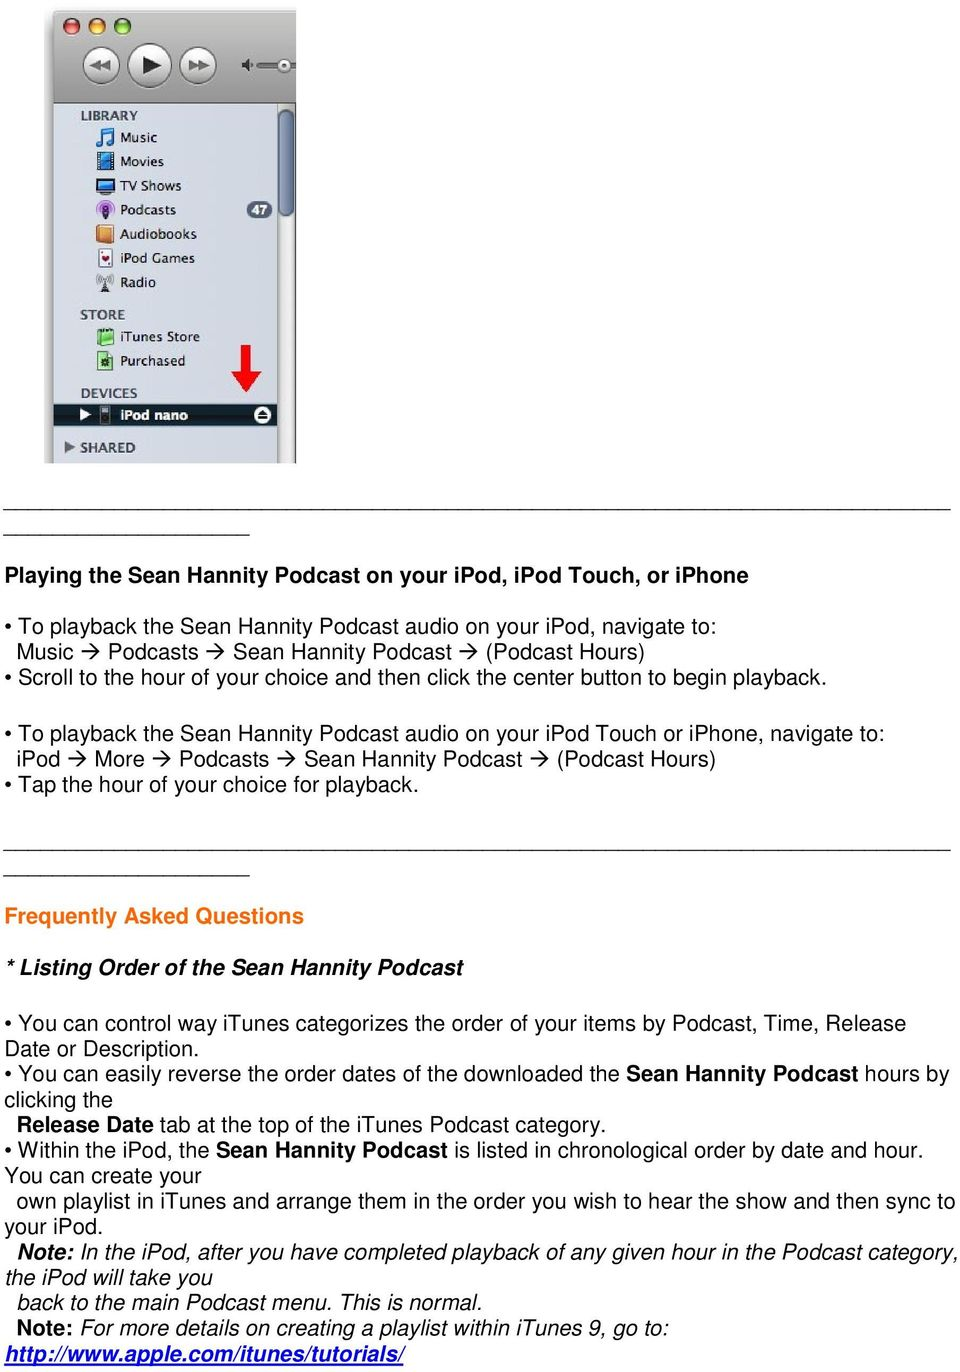 The Sean Hannity Podcast for itunes 9 - PDF